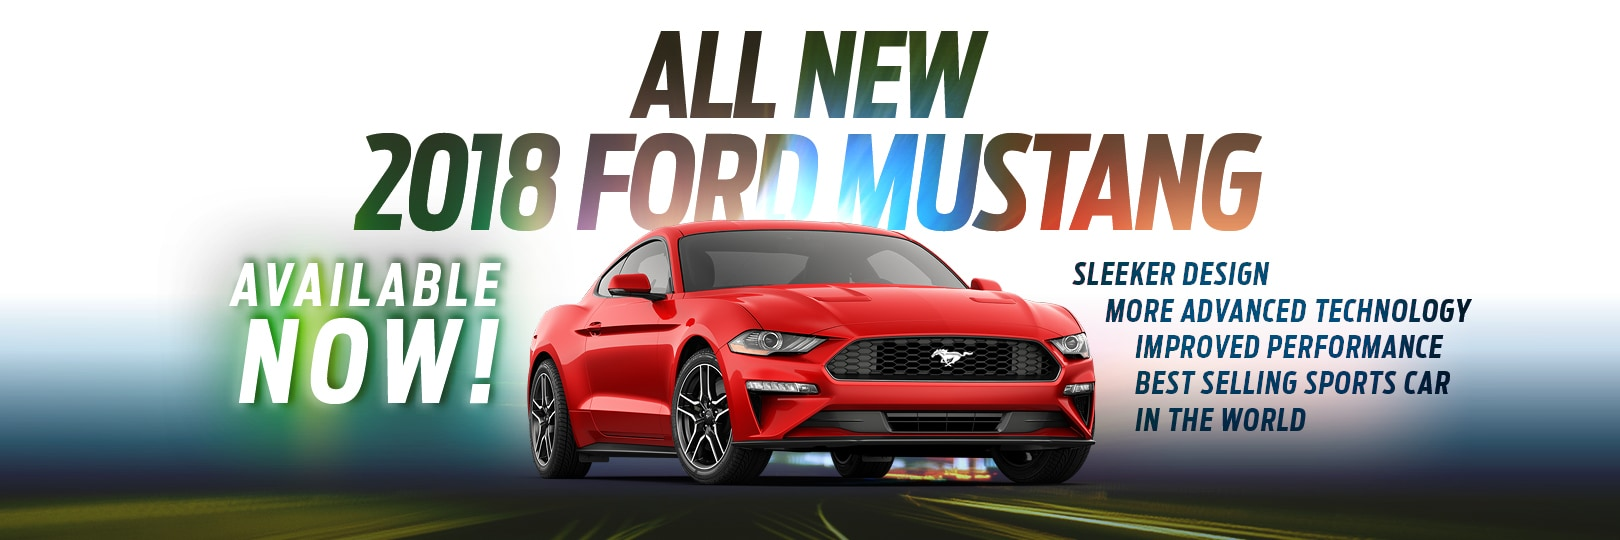 Lawrenceville Ford Lincoln Ford Dealership In Lawrenceville NJ - Ford dealers in nj